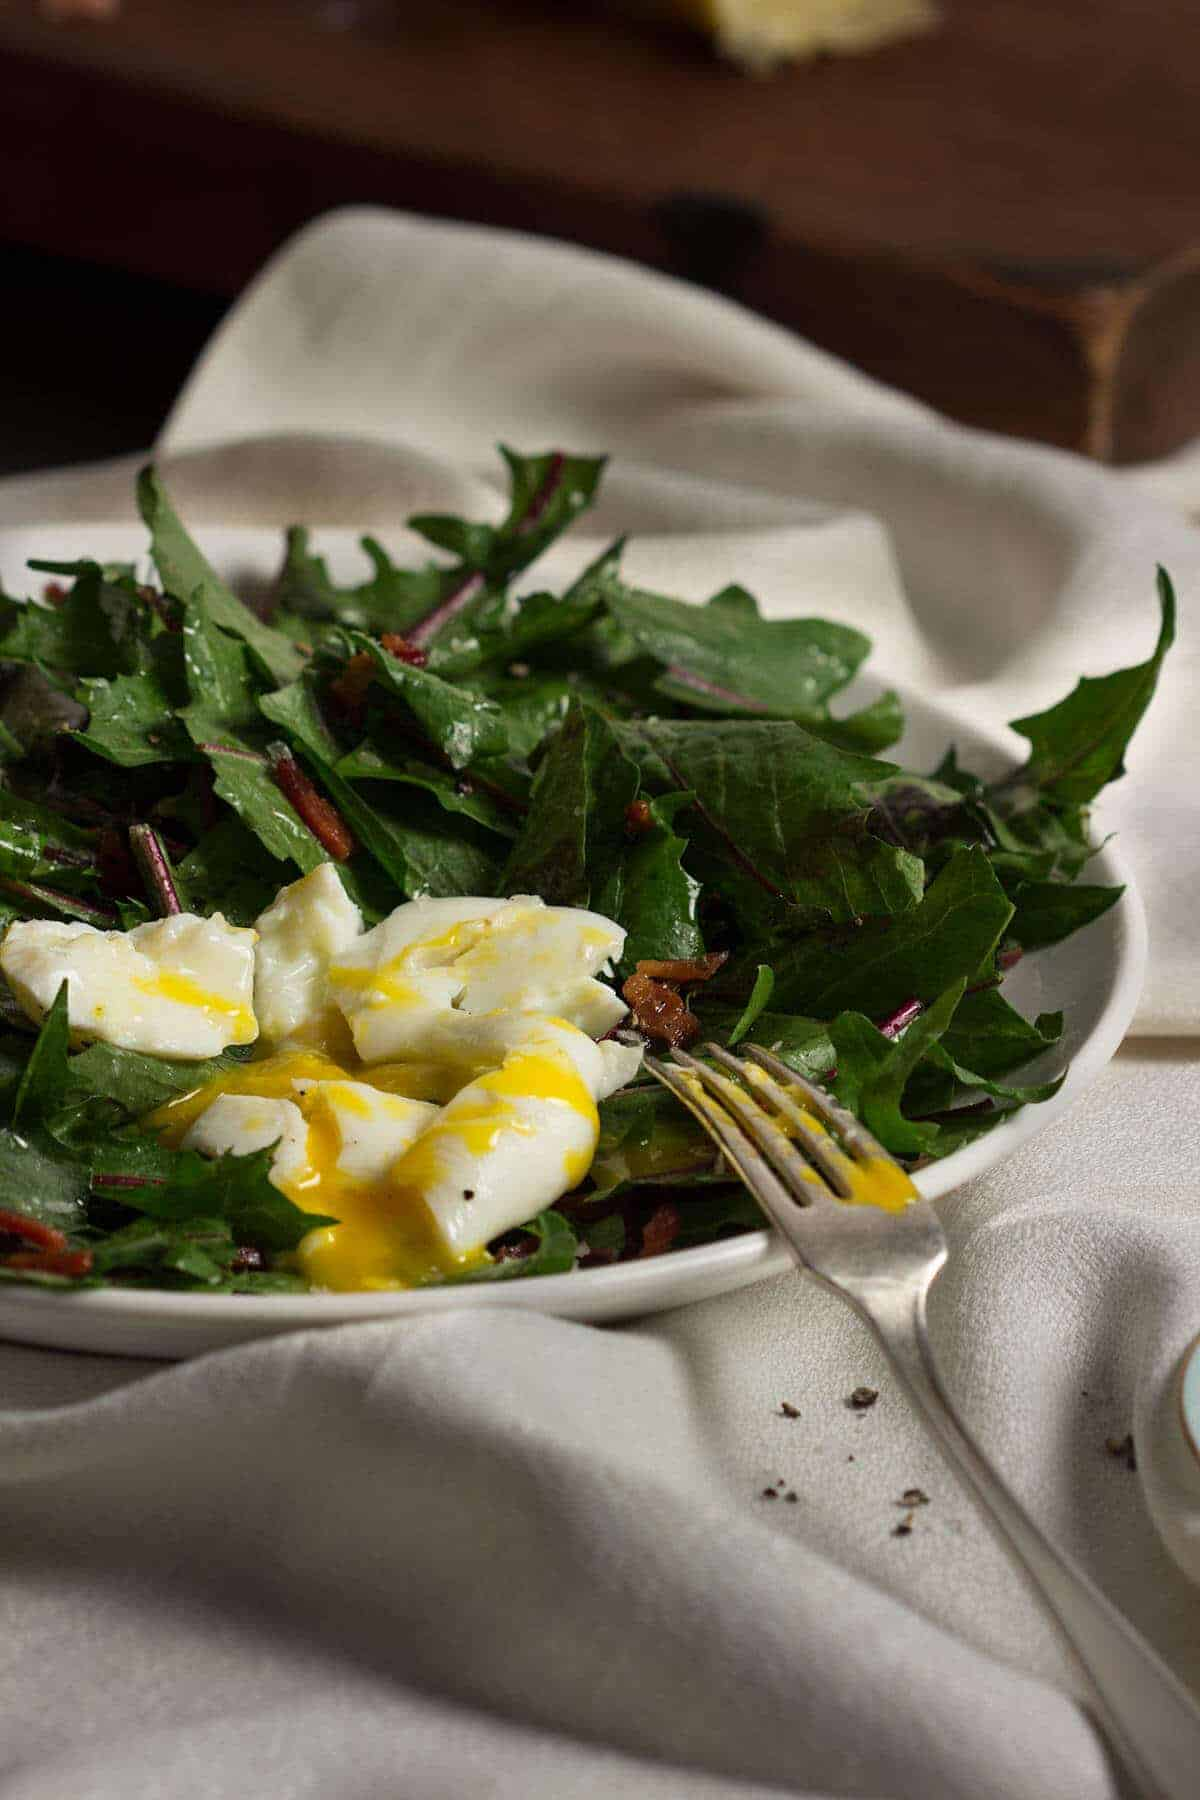 Wilted Dandelion Greens Salad with Broken Yolk